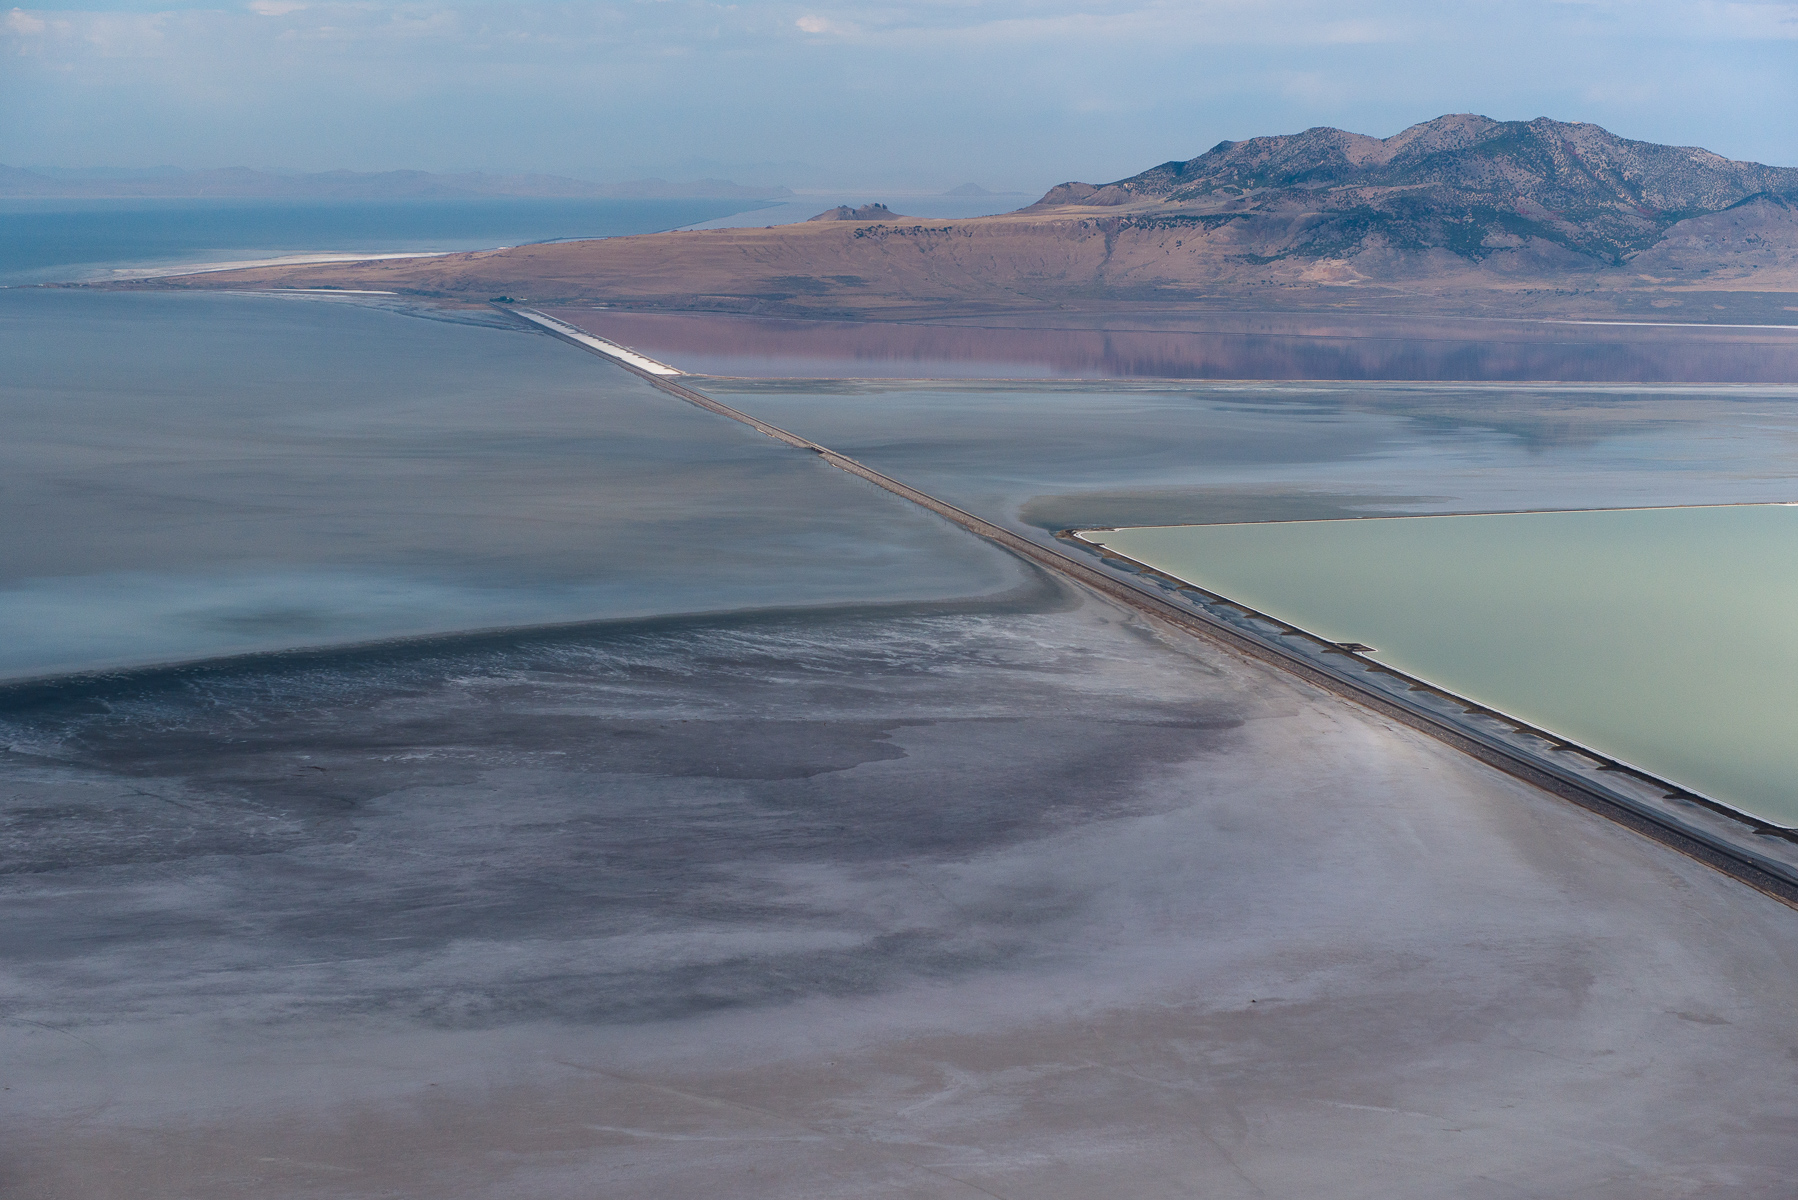 Salt Lake Evaporation Pond #1. Great Salt Lake Utah, USA 2012.  Salt evaporation pond clusters adjacent to Great Salt Lake in Utah. Water from the Great Salt Lake is pumped into the desert flats that border the lake and when this water evaporates, salt, potassium, calcium and other minerals, are left behind. The colors of the ponds result from both the variations in salinity and from the algae content. While these operations are not polluting in themselves, there are concerns around both the amount of water withdrawn from the lake as well as potential loss of habitat for shorebirds.        Nikon D800E, Nikkor 24-70mm at 70mm.  ISO 800, 1/3200 at f5.